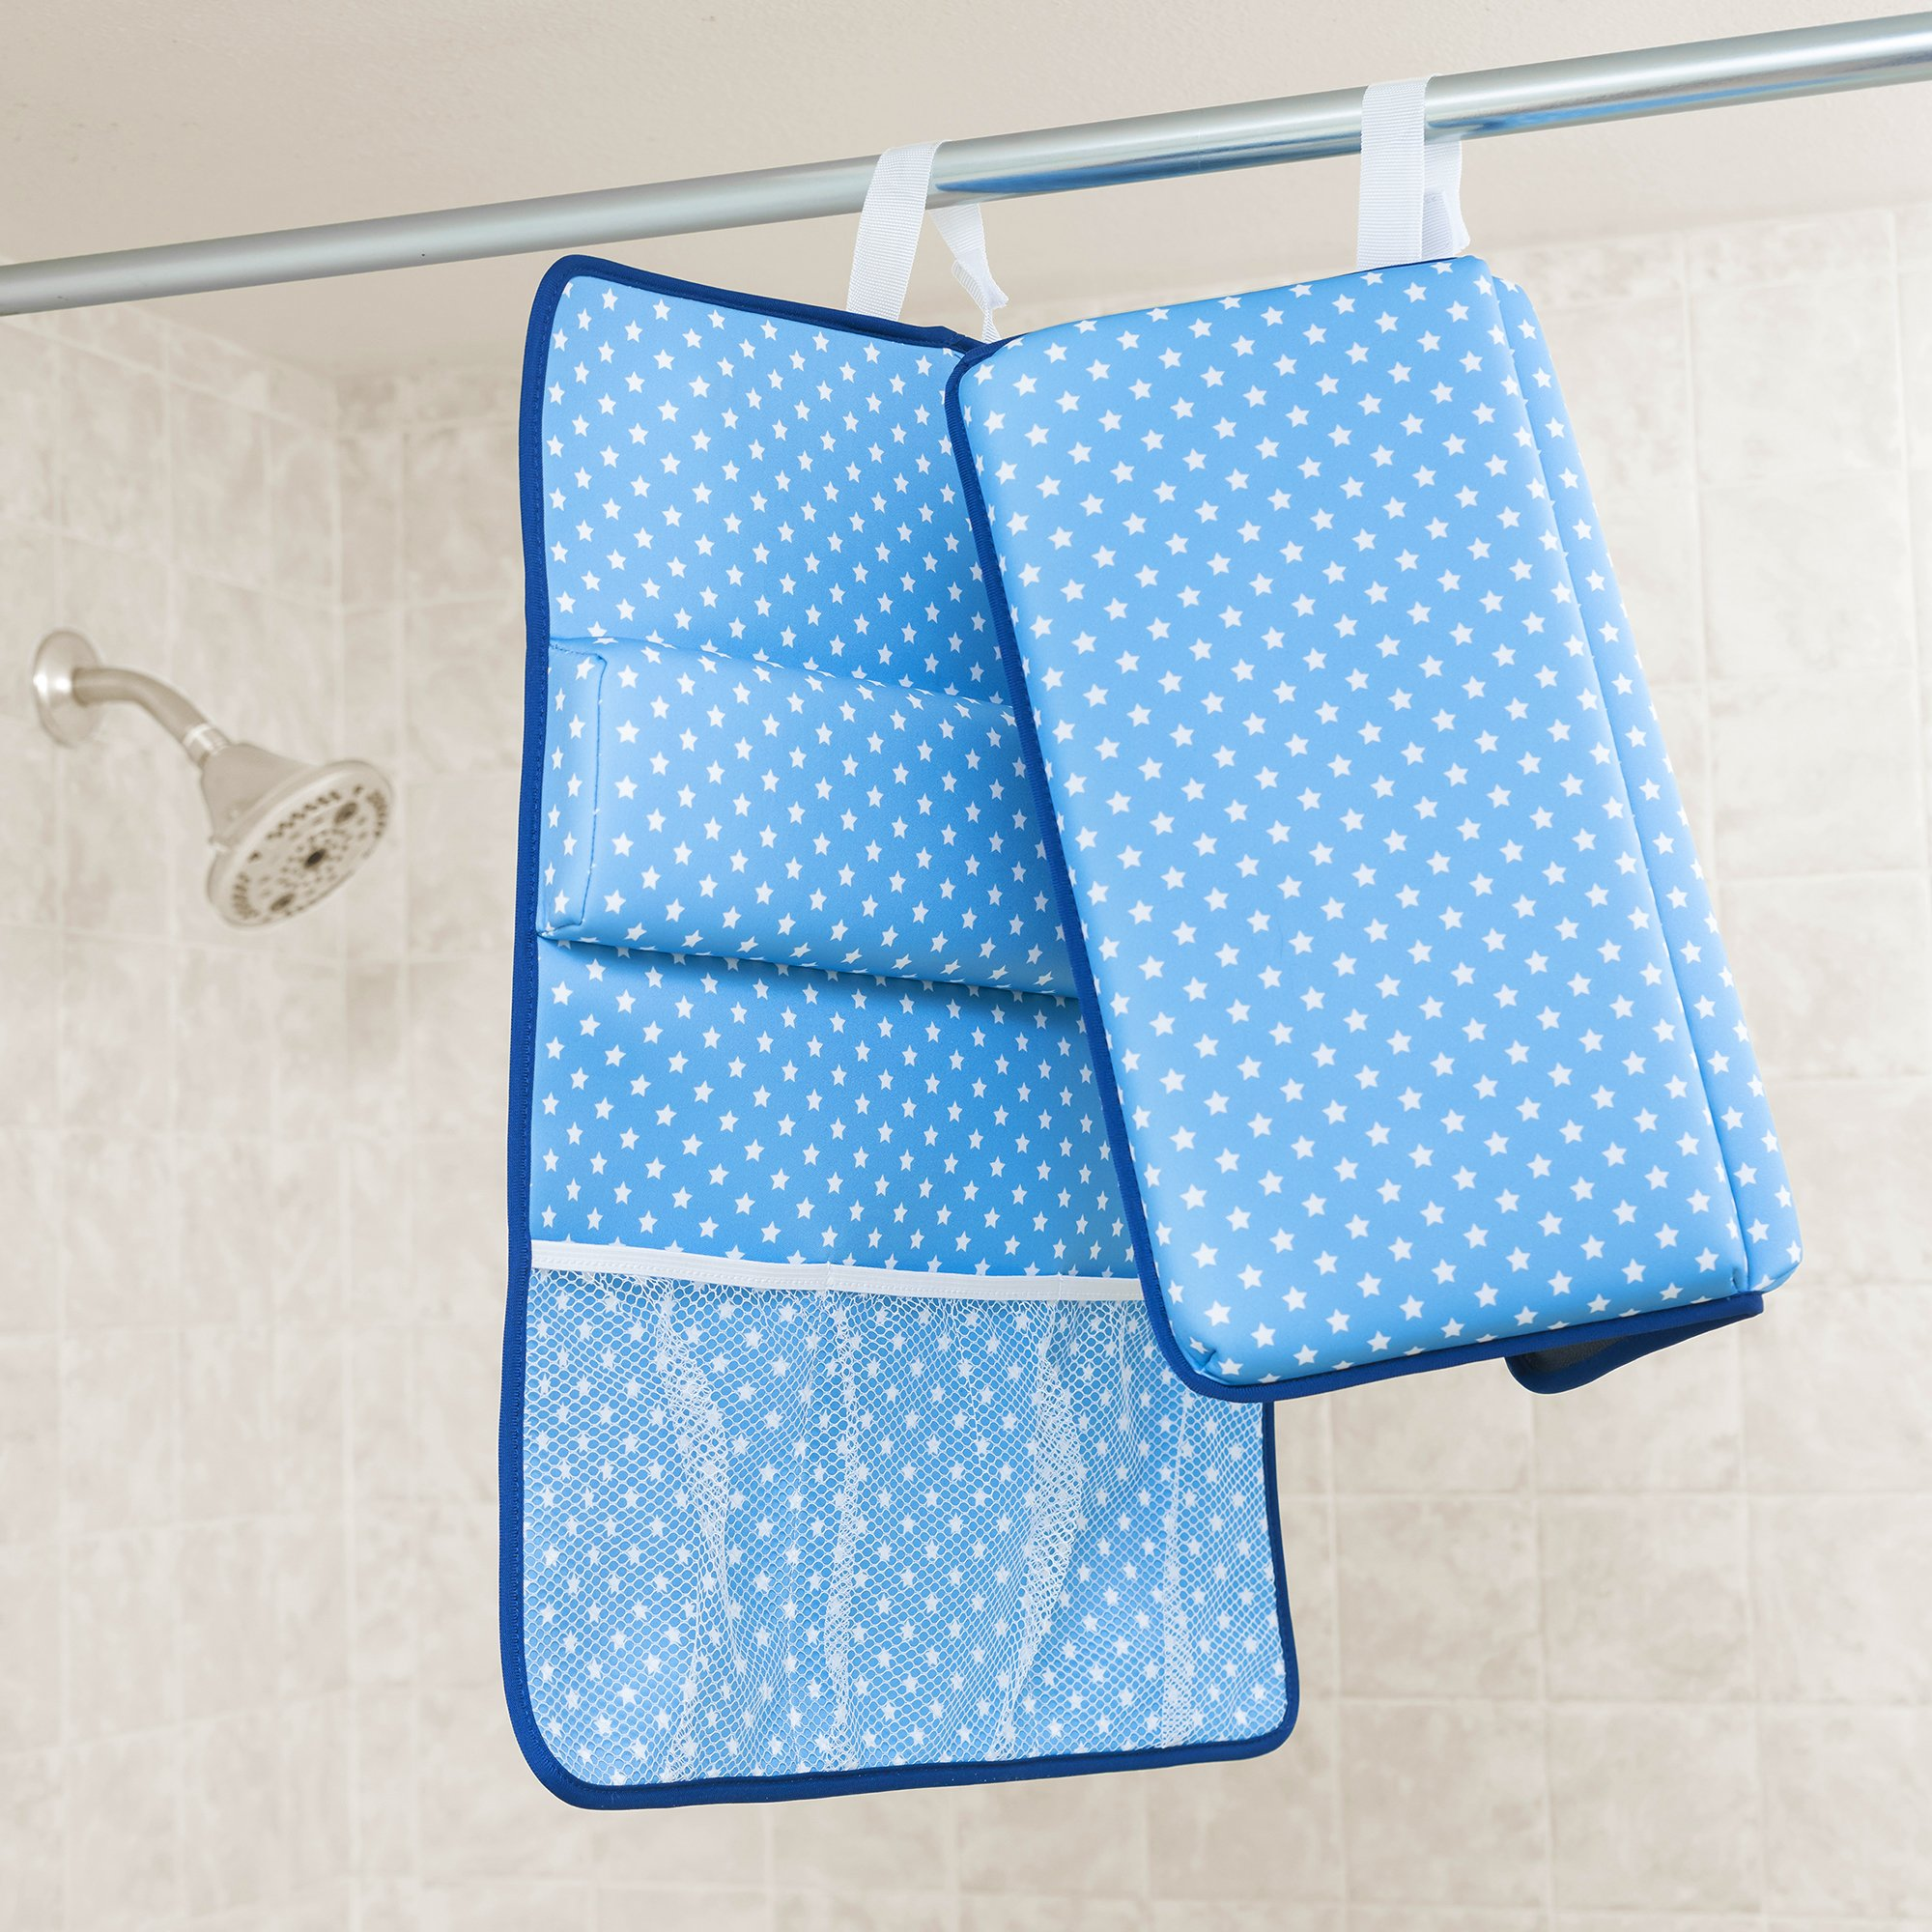 Strictly Stuff Baby Bath Kneeler and Elbow Pad (Pink). Thick, Soft Knee Padding. Durable Neoprene Material and Design. Non-Slip Backing with Suction Cups. Fits All tubs. Three Great Color Patterns. by Strictly Stuff (Image #4)